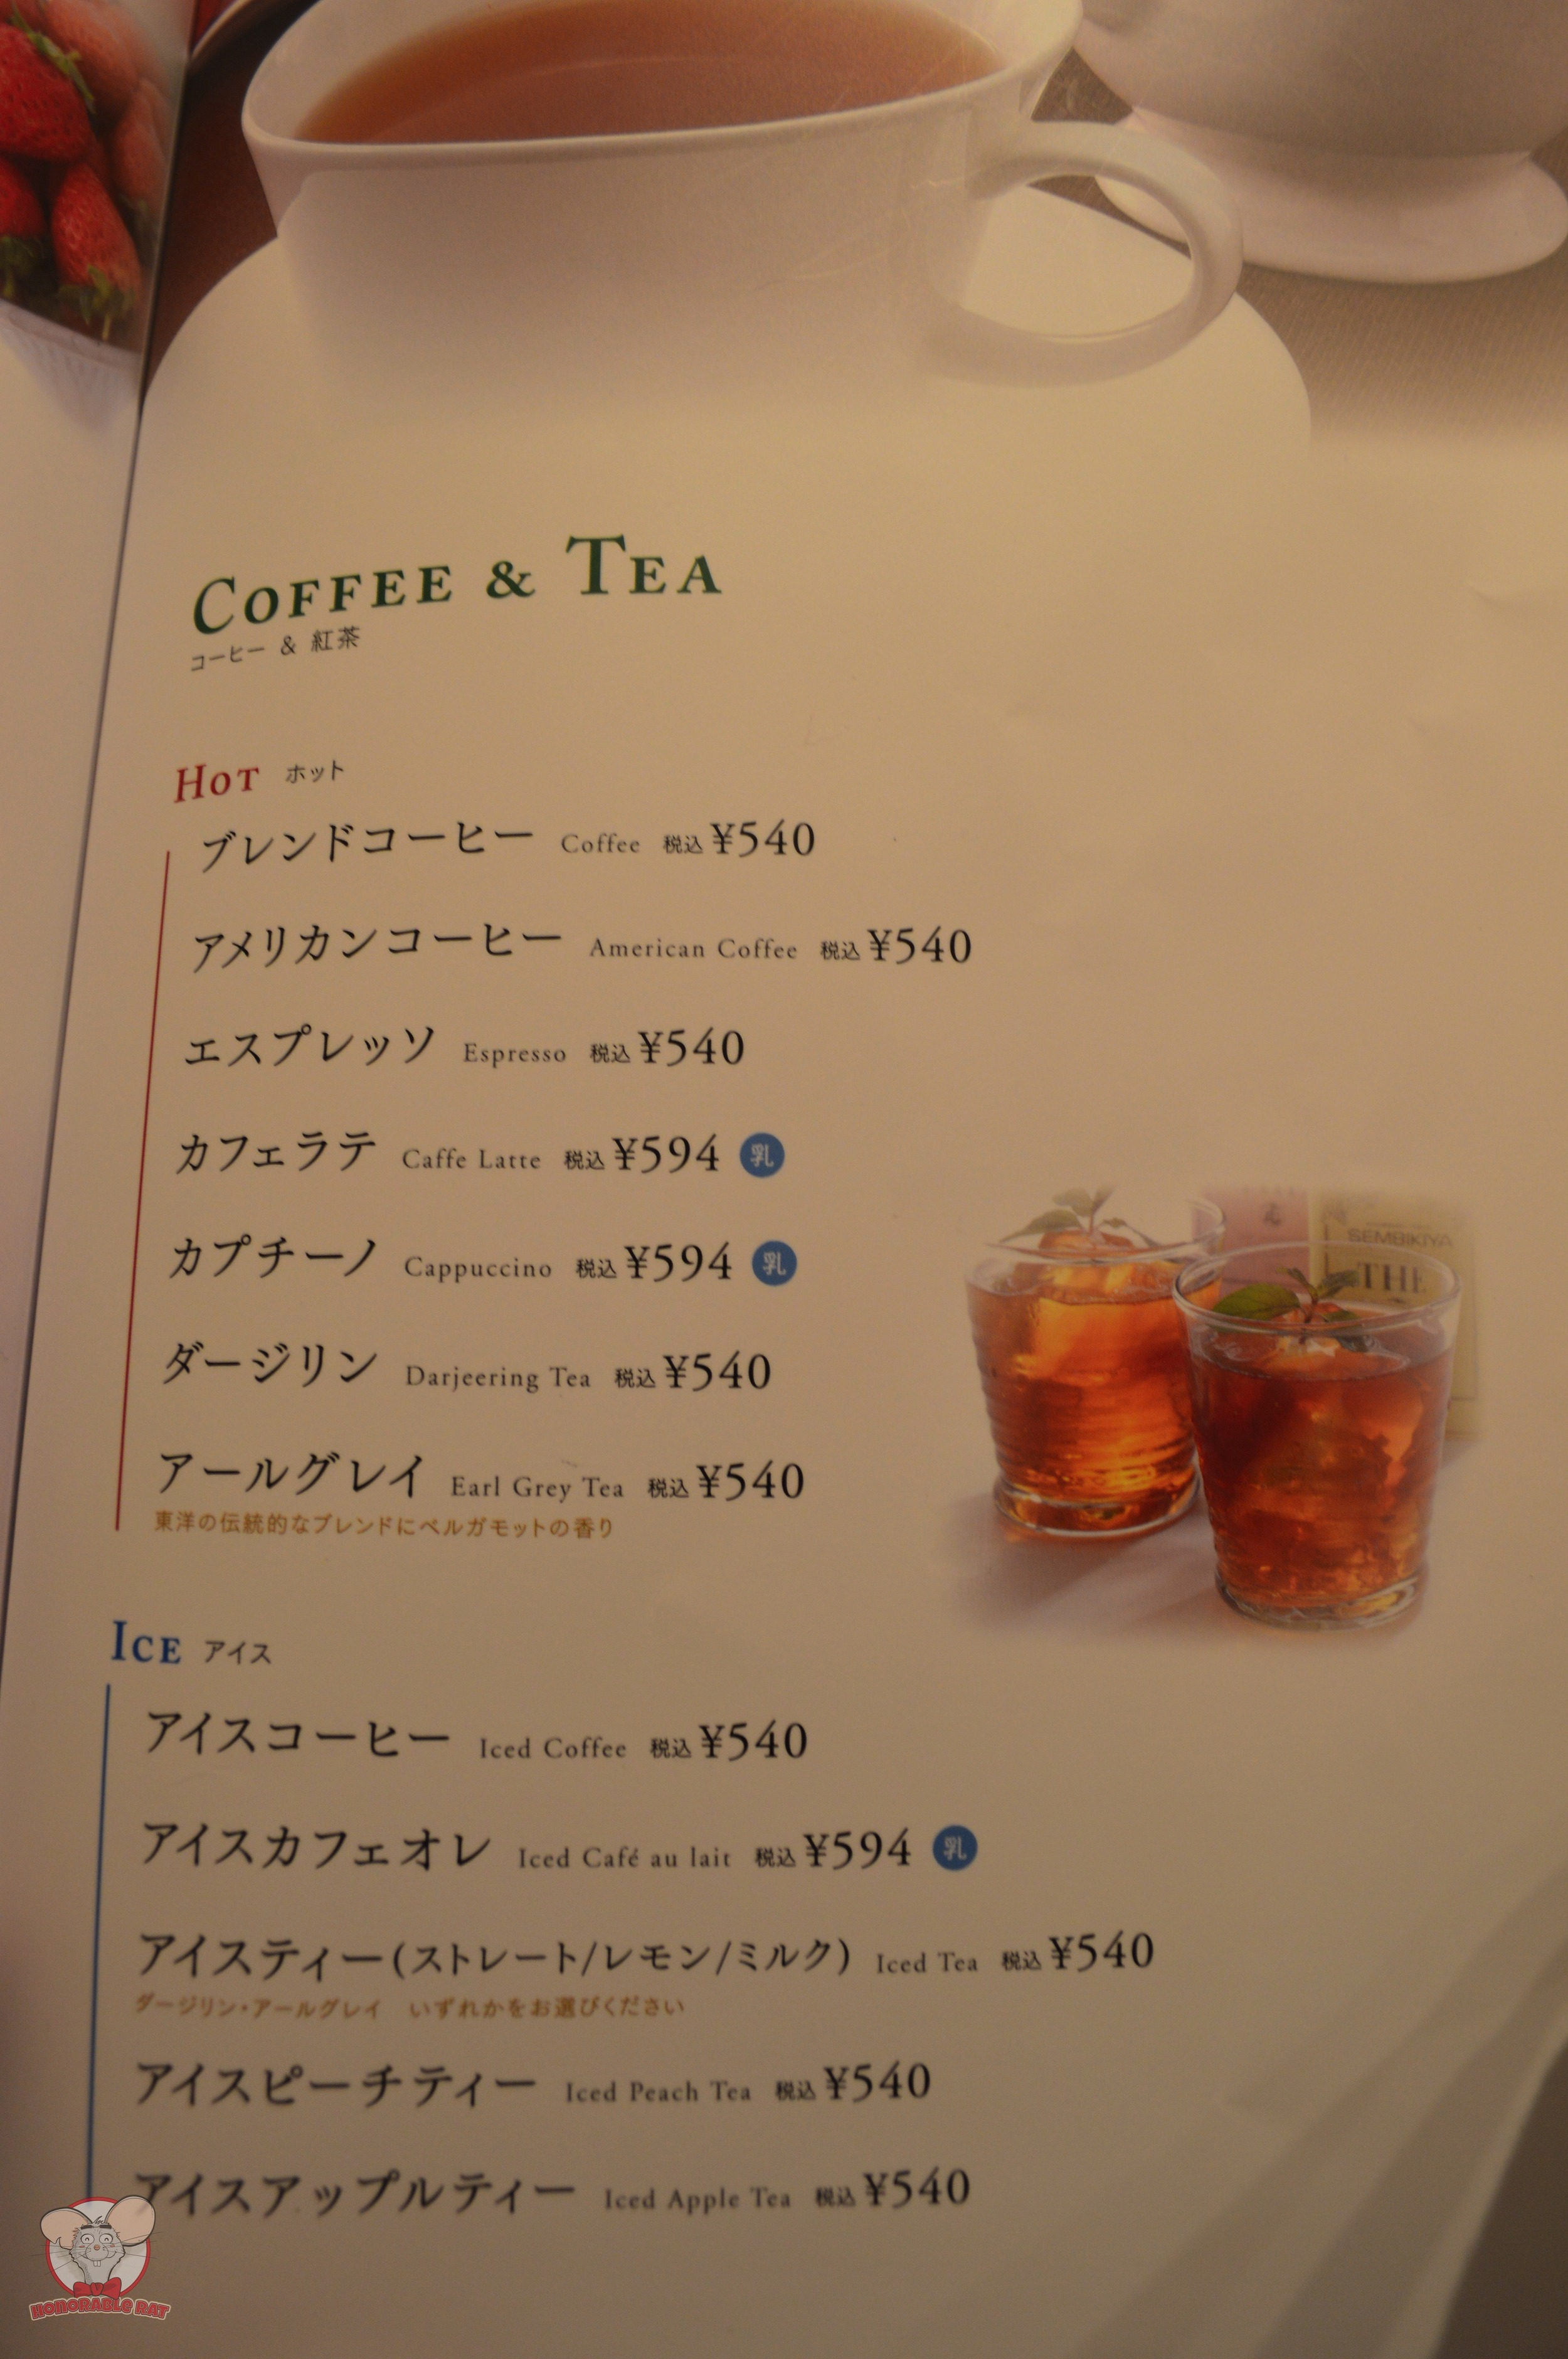 Coffee & Tea